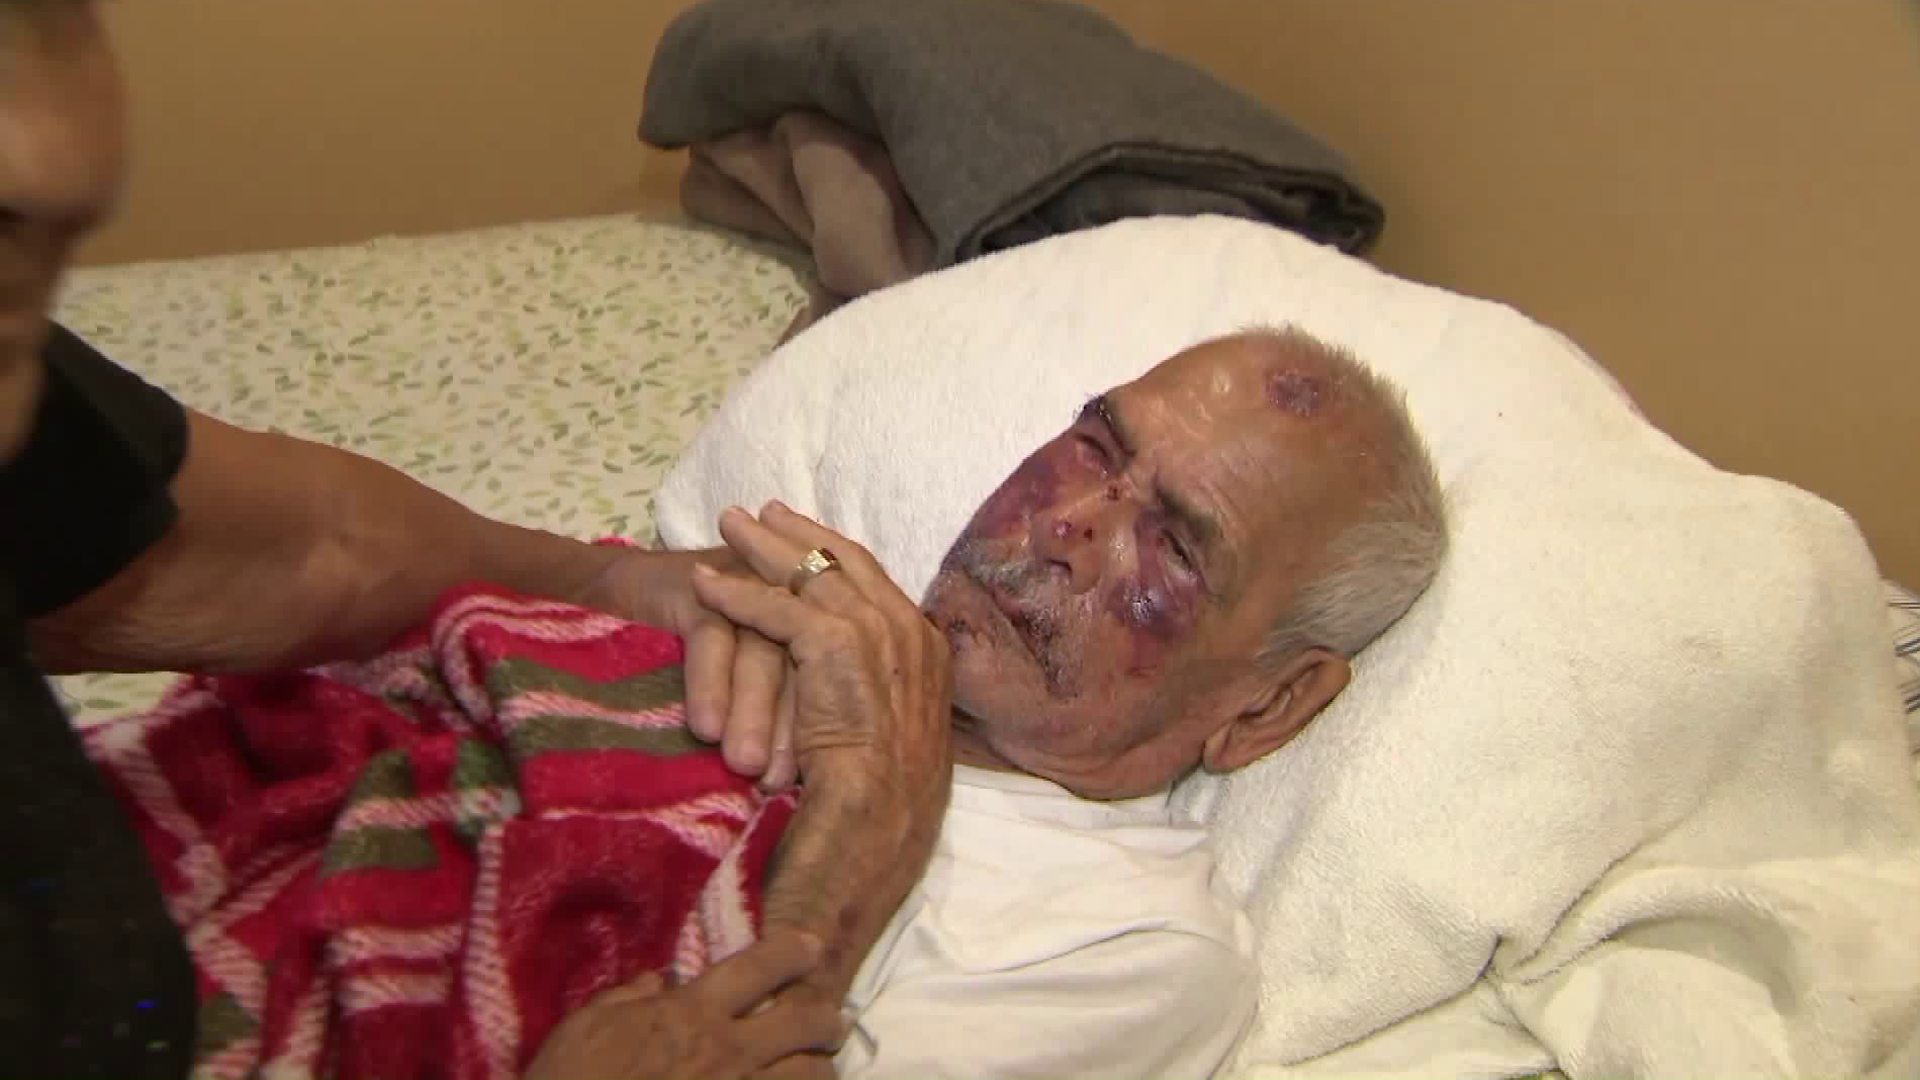 Rodolfo Rodriguez, 92, recovers on July 6, 2018, two days after he was brutally attacked while walking in South Los Angeles. (Credit: KTLA)